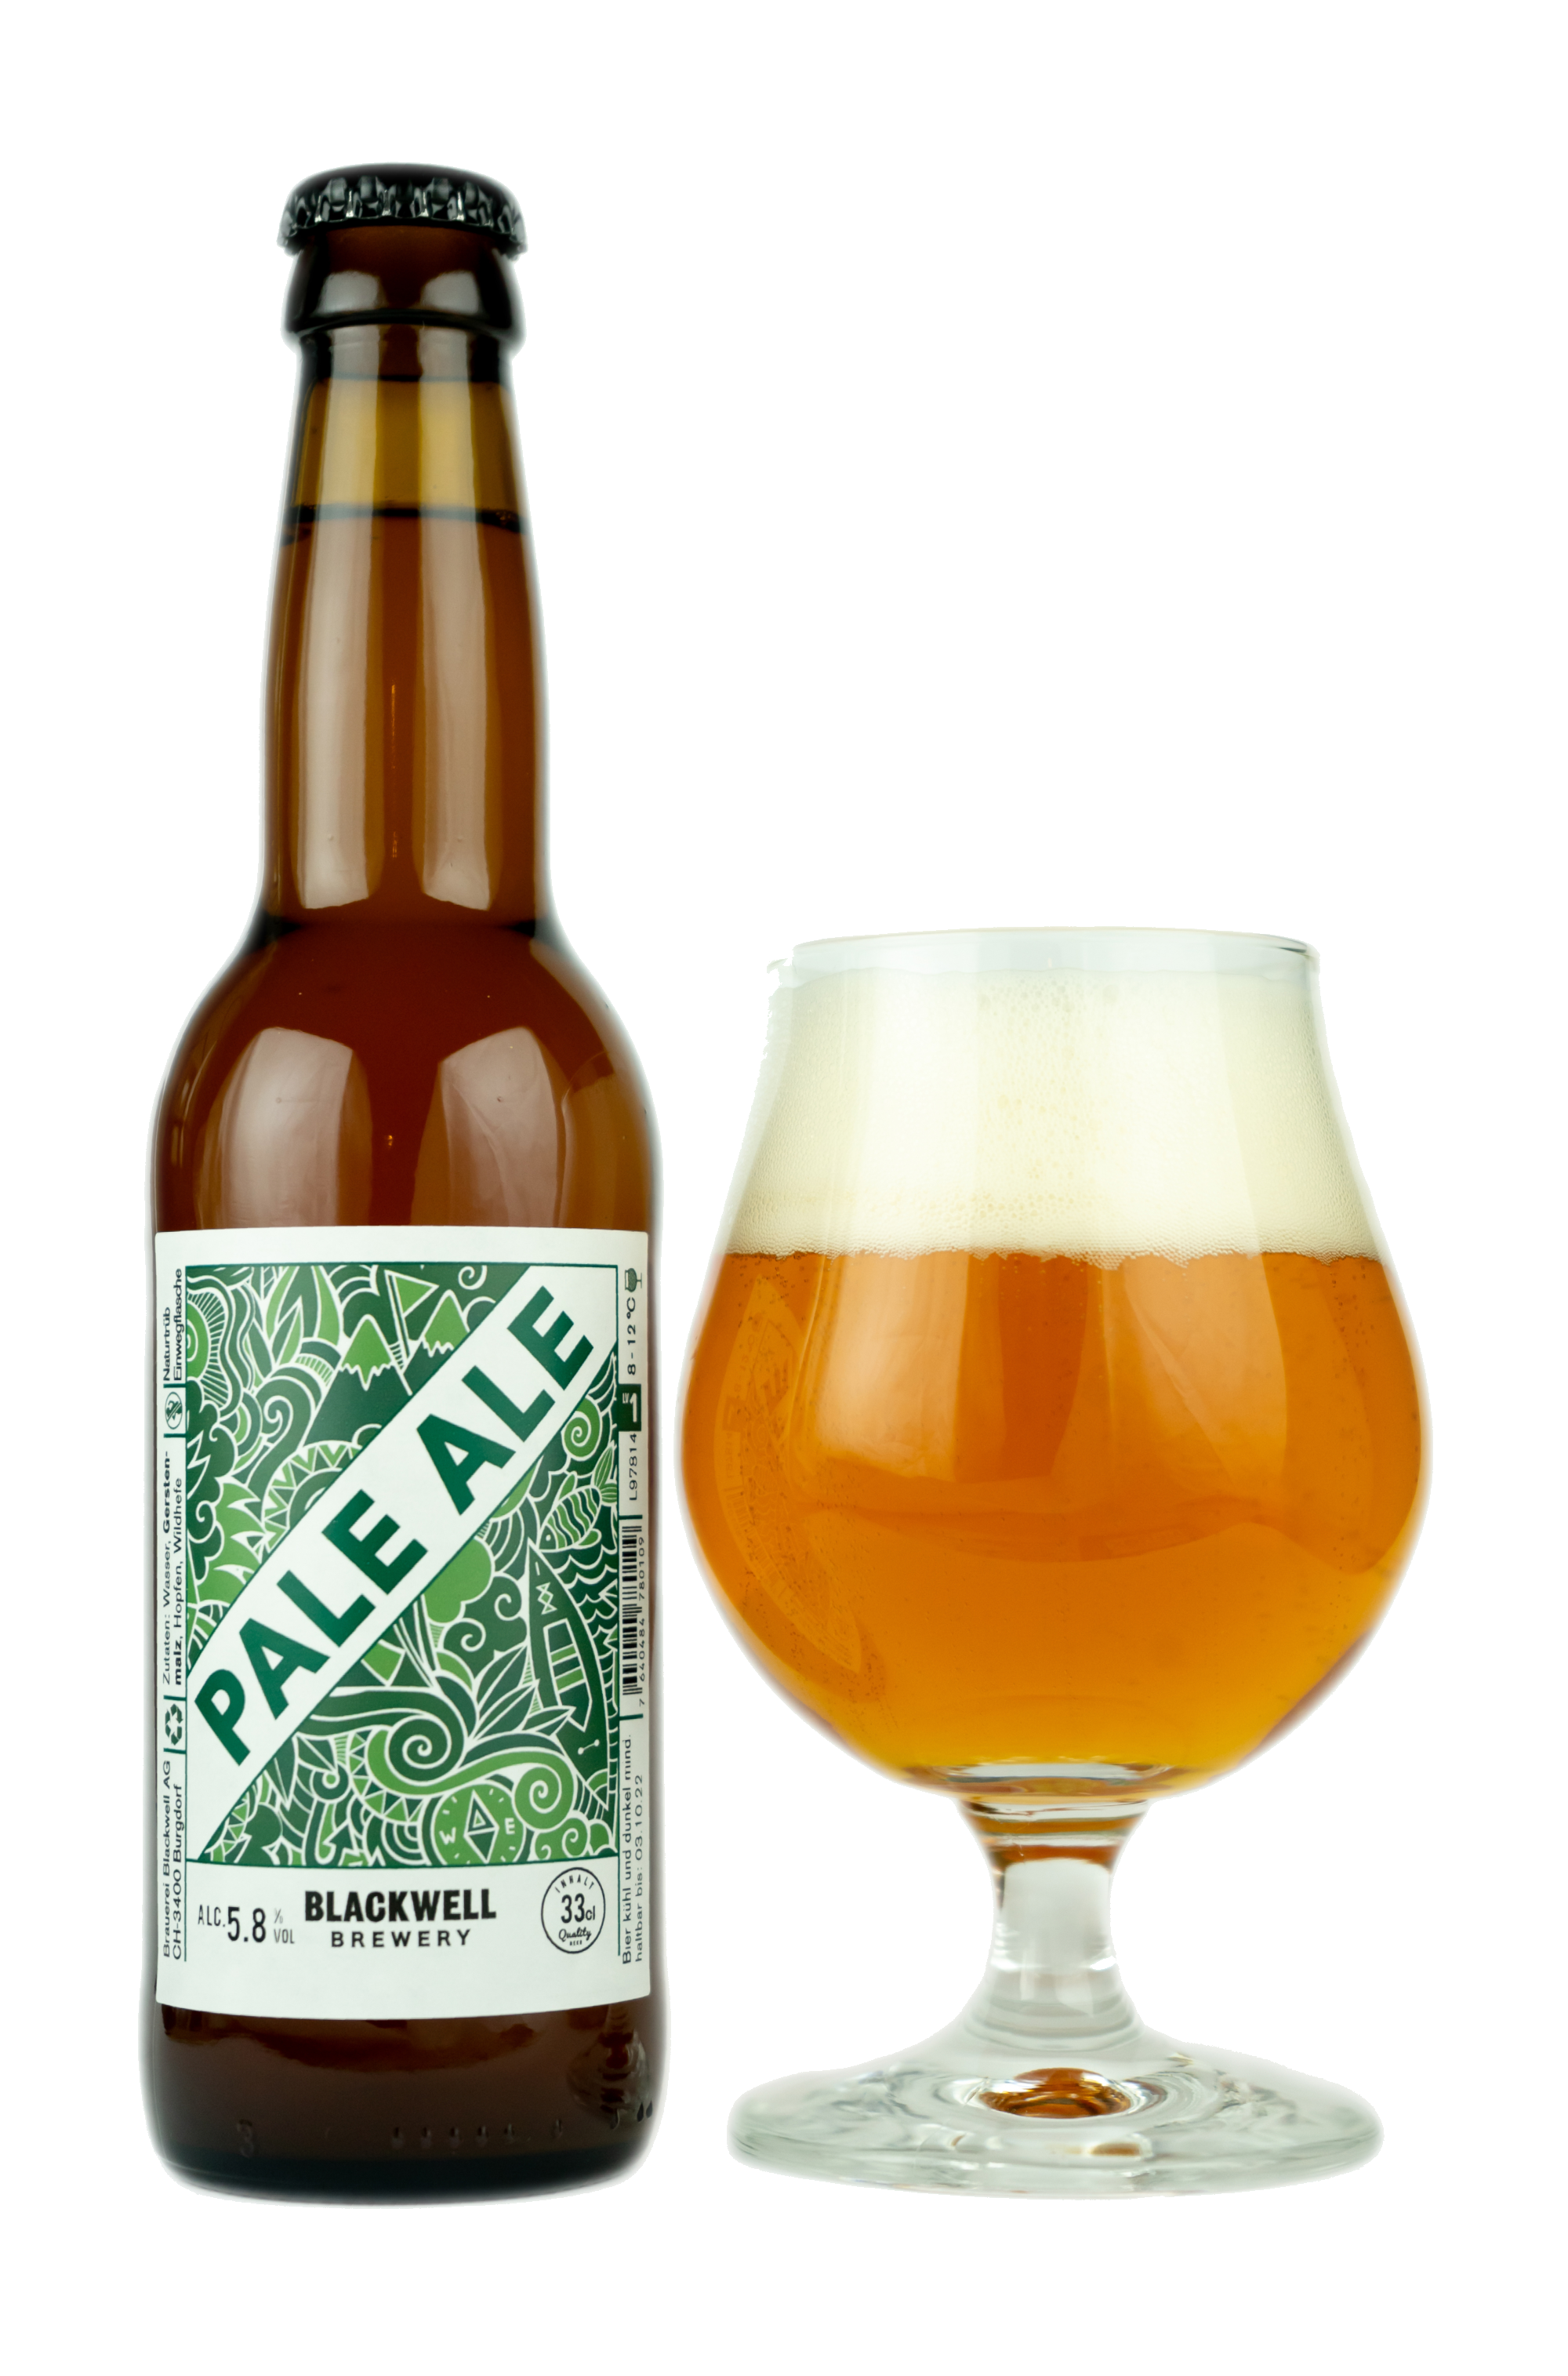 https://blackwellbrewery.ch/wp-content/uploads/2021/10/Blackwell_PaleAle_small_nb.png